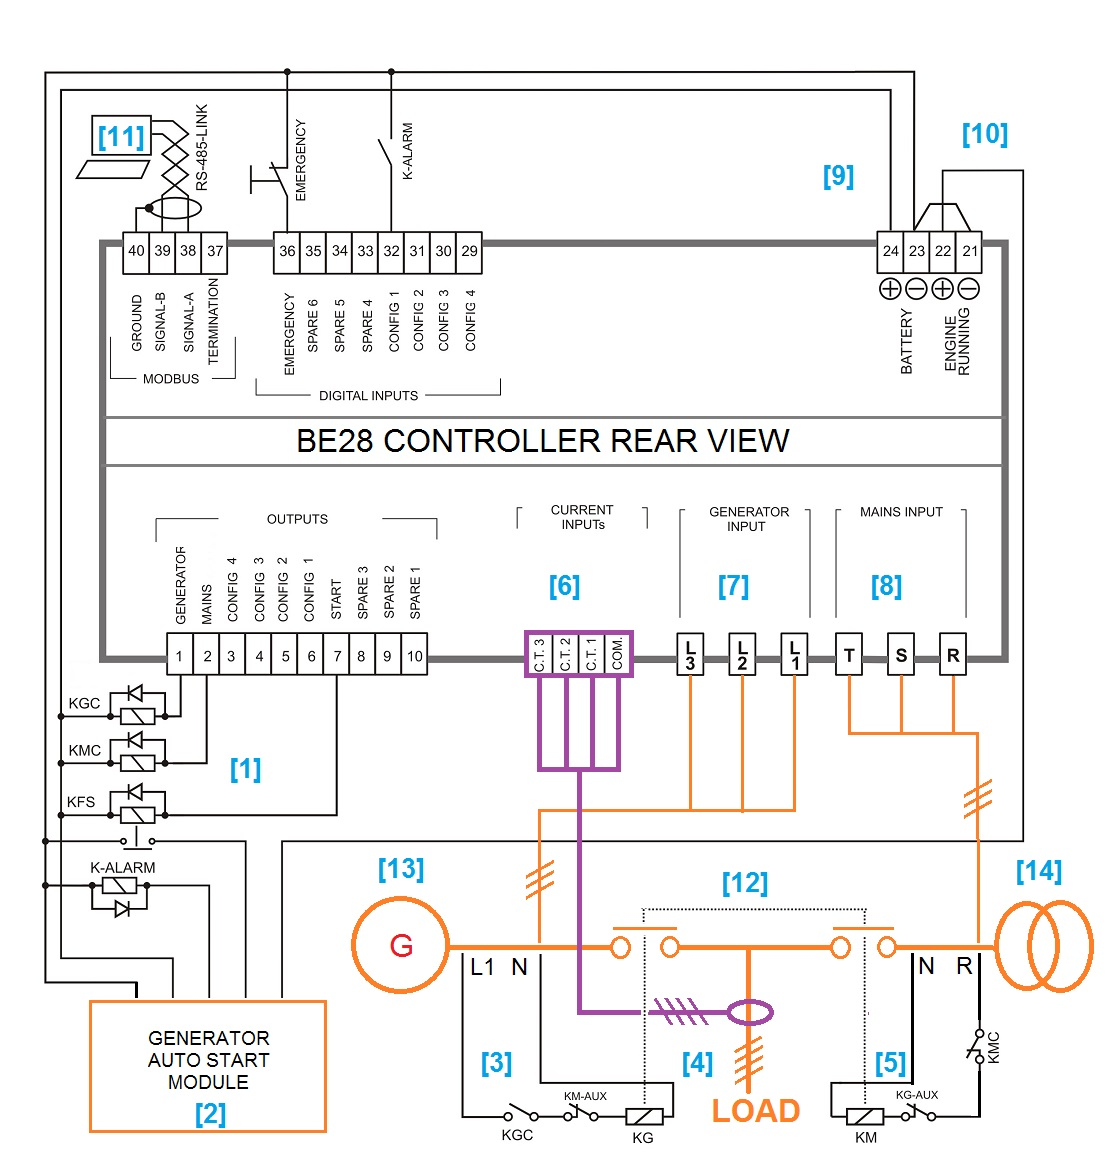 3 Phase Transfer Switch Wiring Diagram - Wiring Diagrams